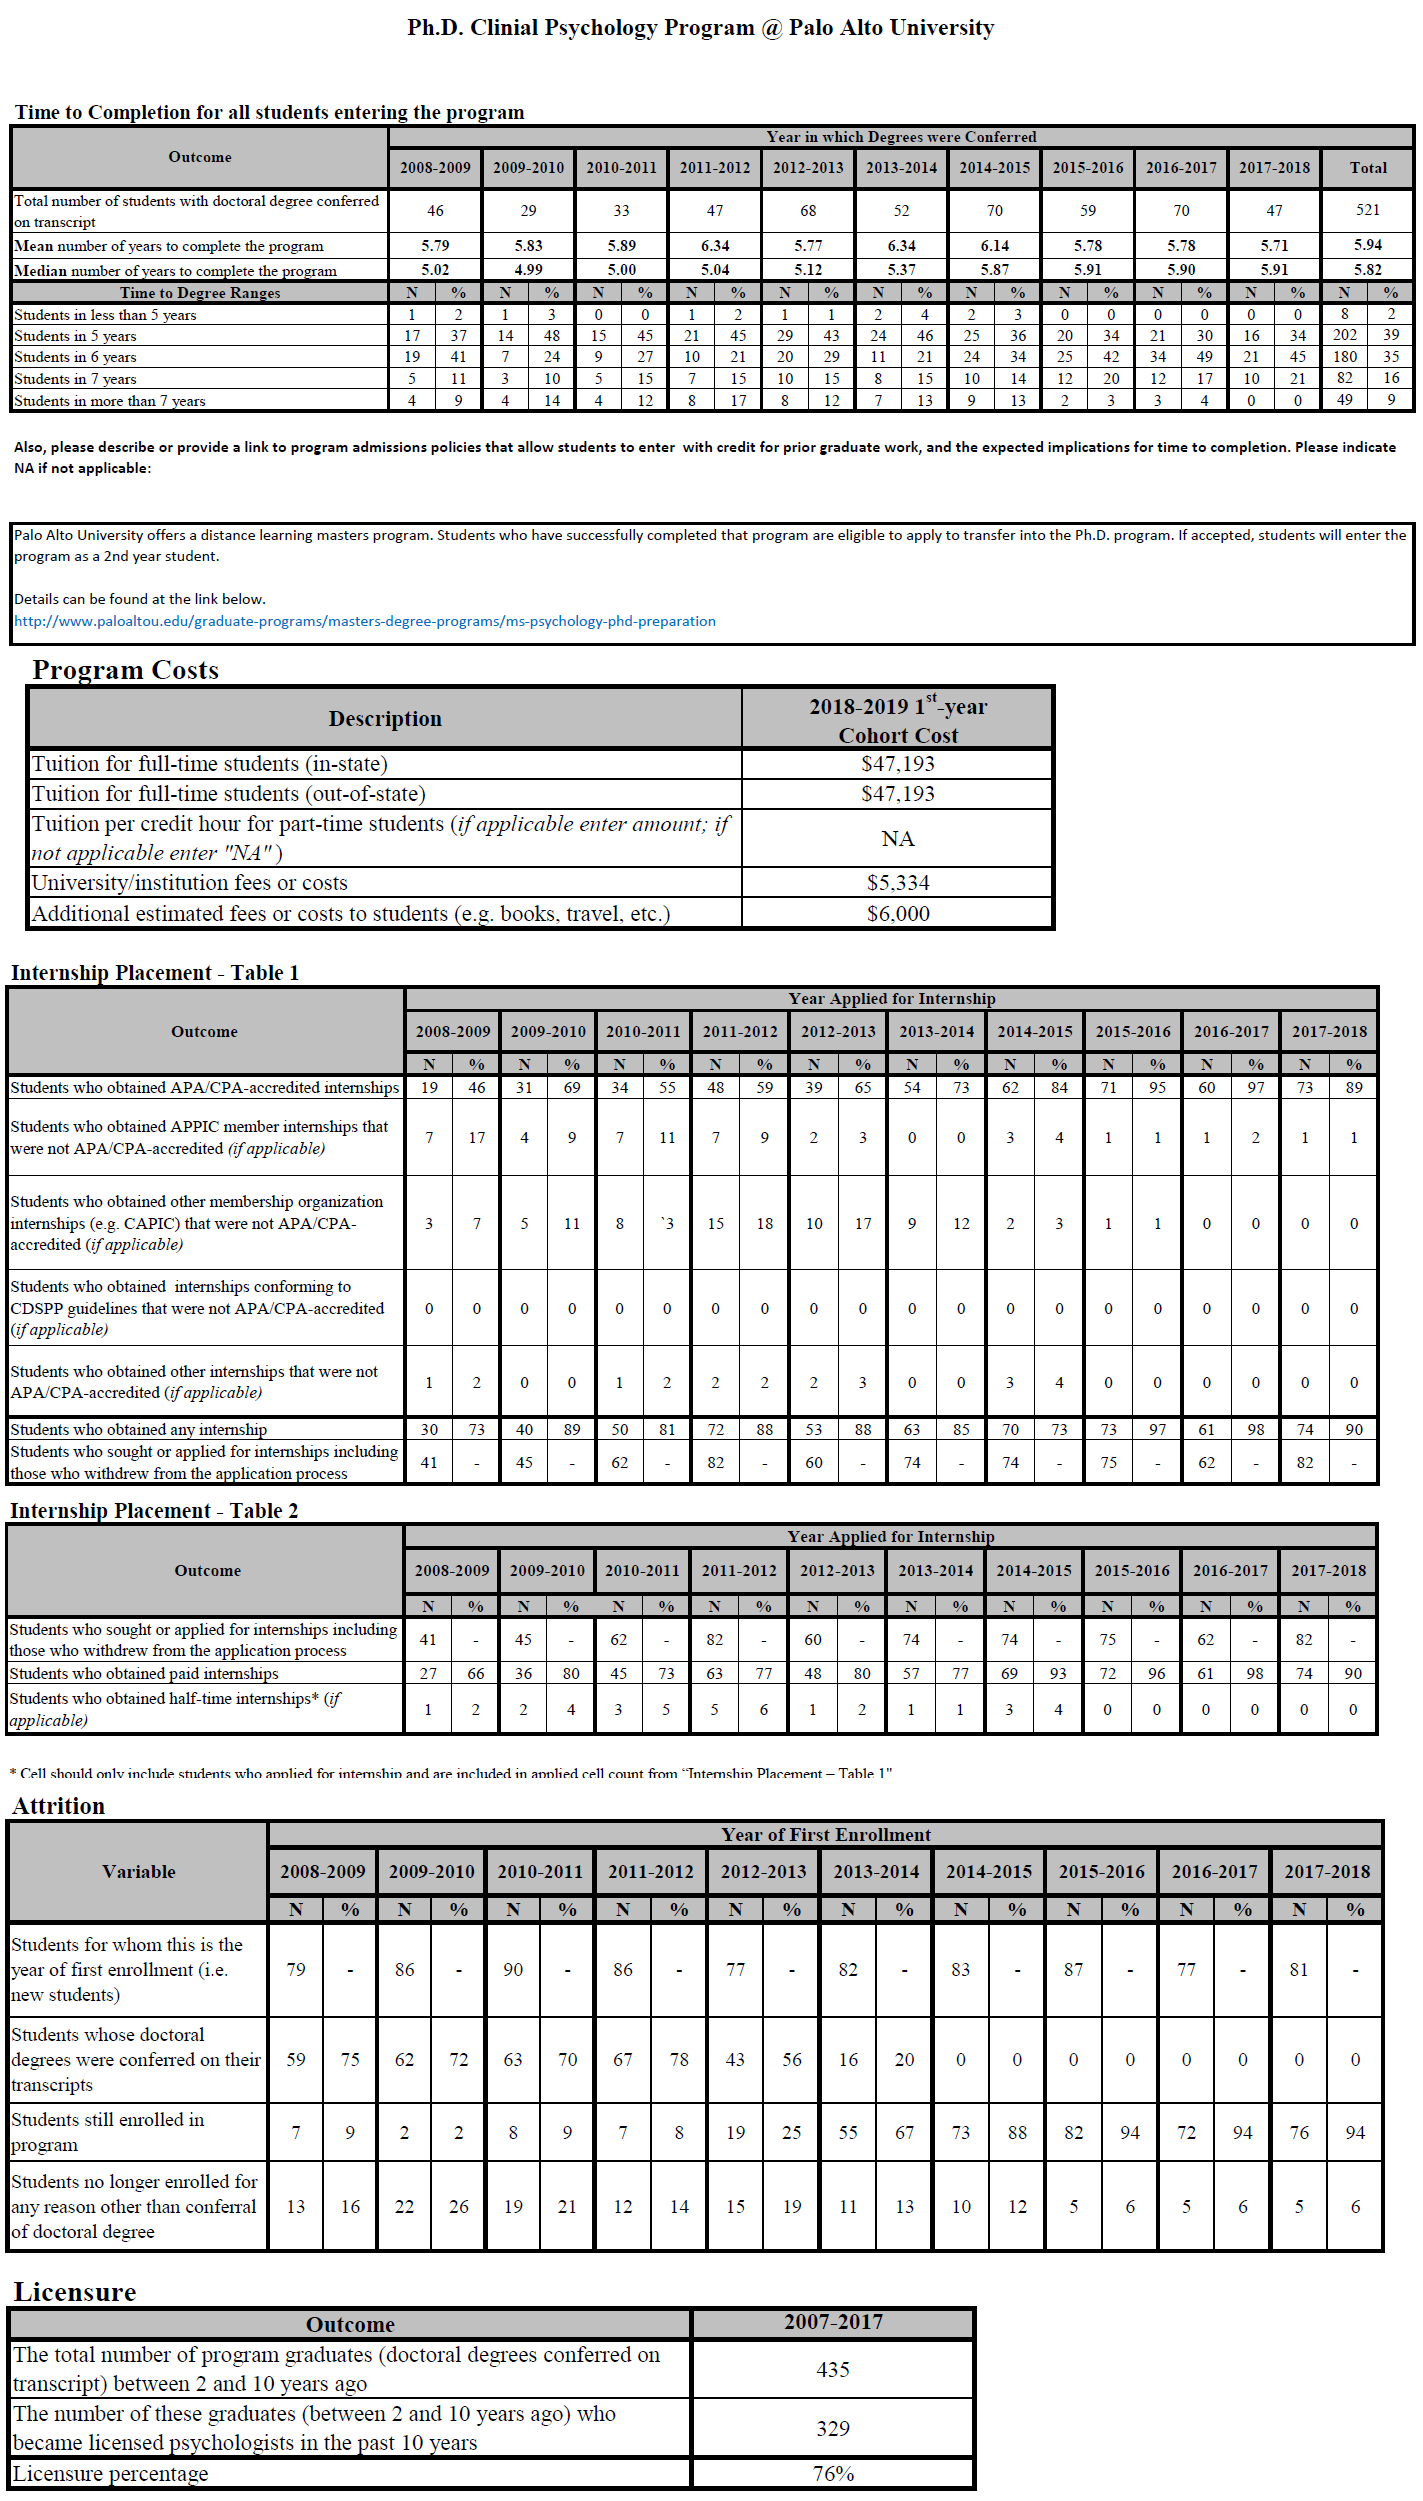 APA Data Tables displaying time to completion, tuition, internship, attrition, and licensure data.